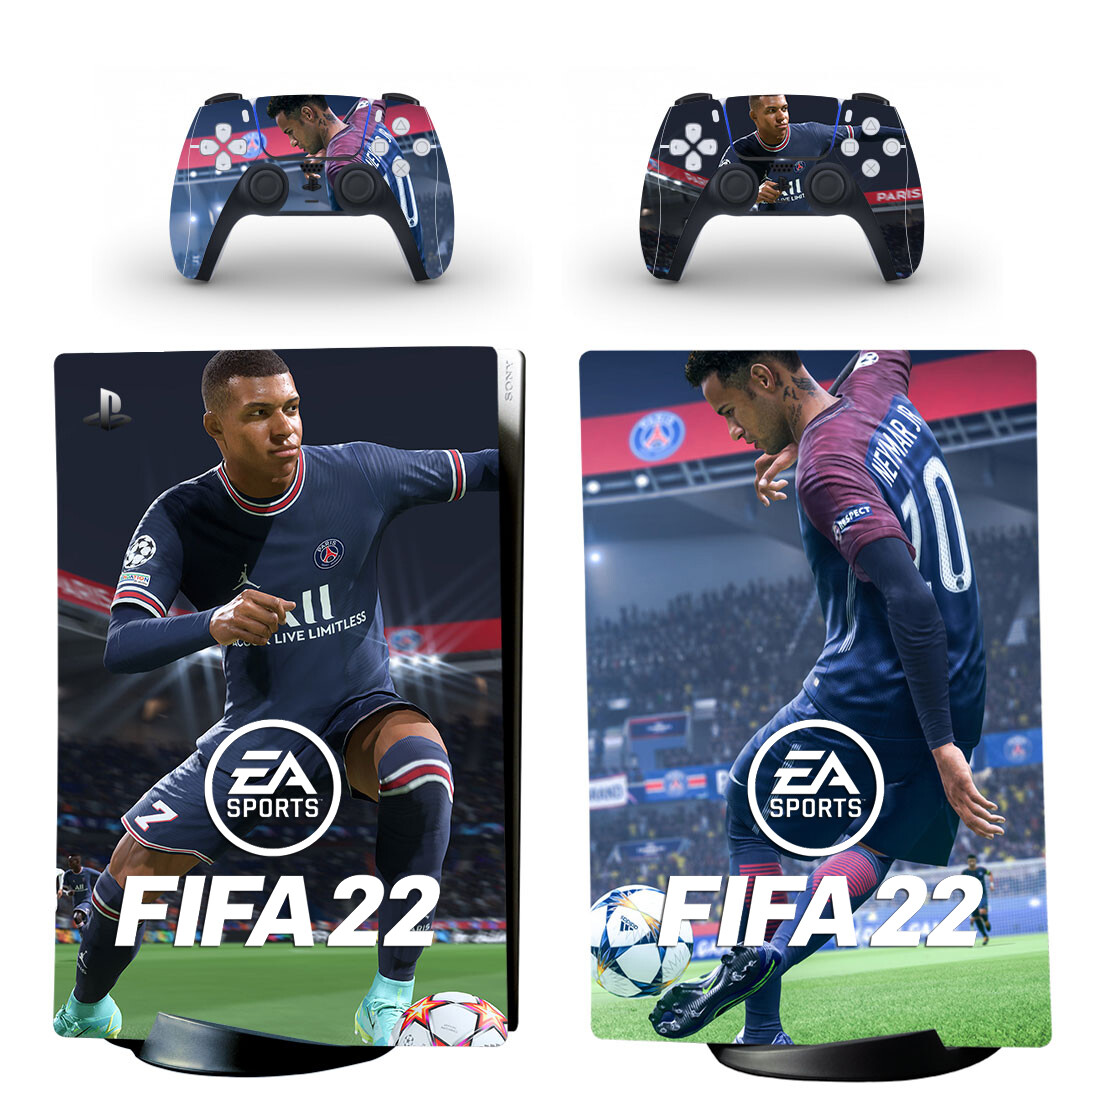 FIFA 22 Skin Sticker Decal For PS5 Digital Edition And Controllers